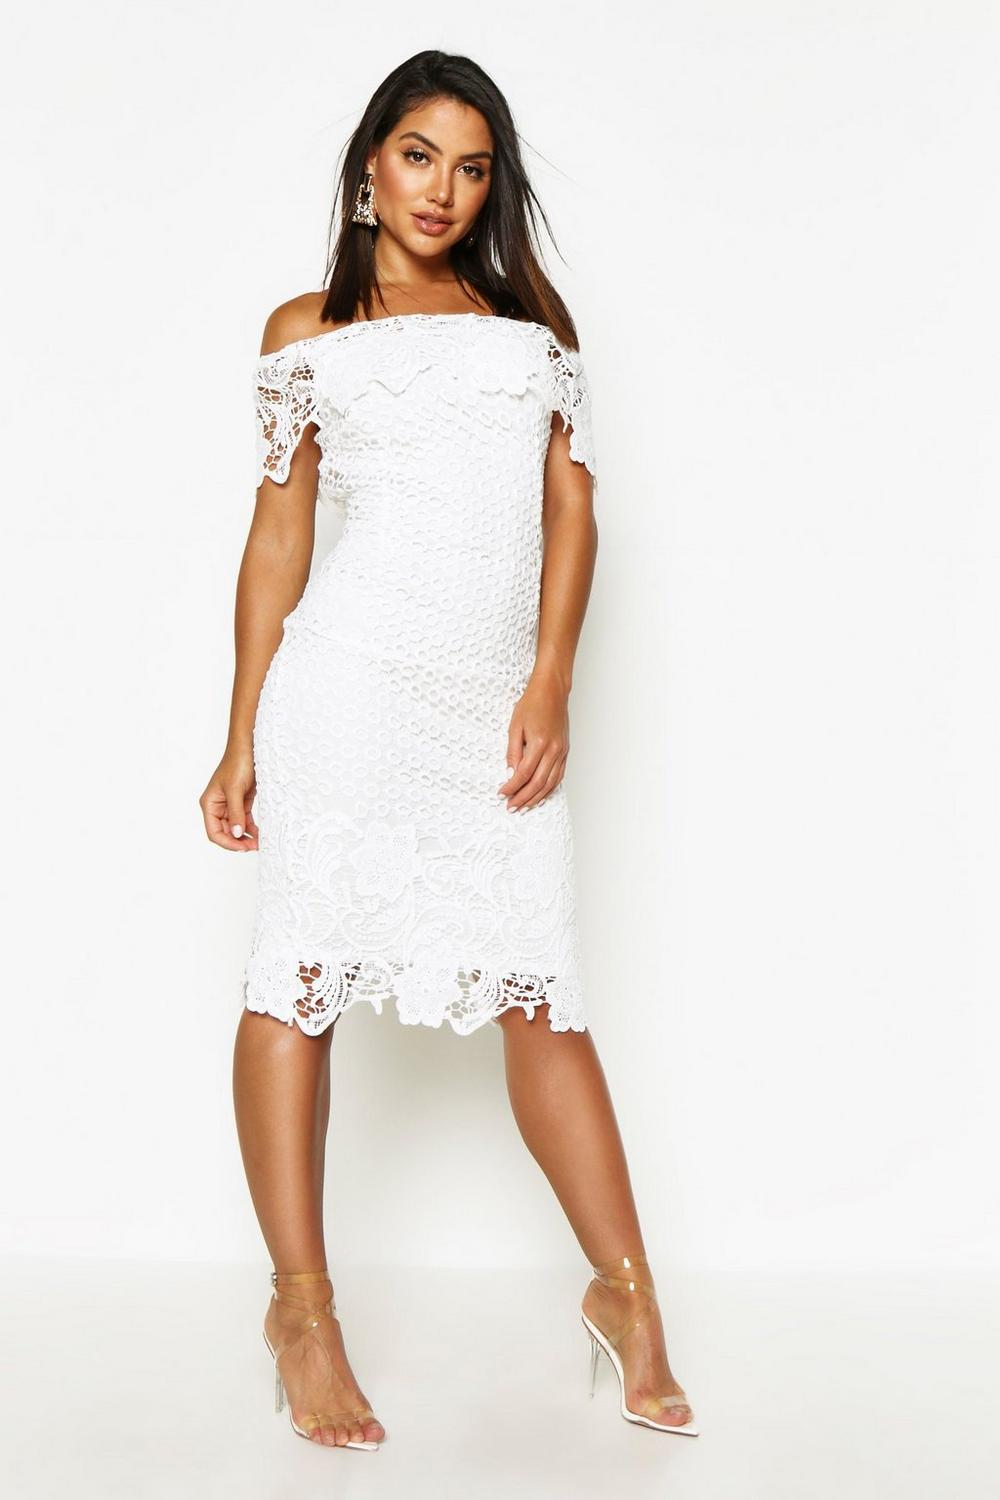 b87ccdcfeea9 Boutique Lace Off Shoulder Midi Dress. Hover to zoom